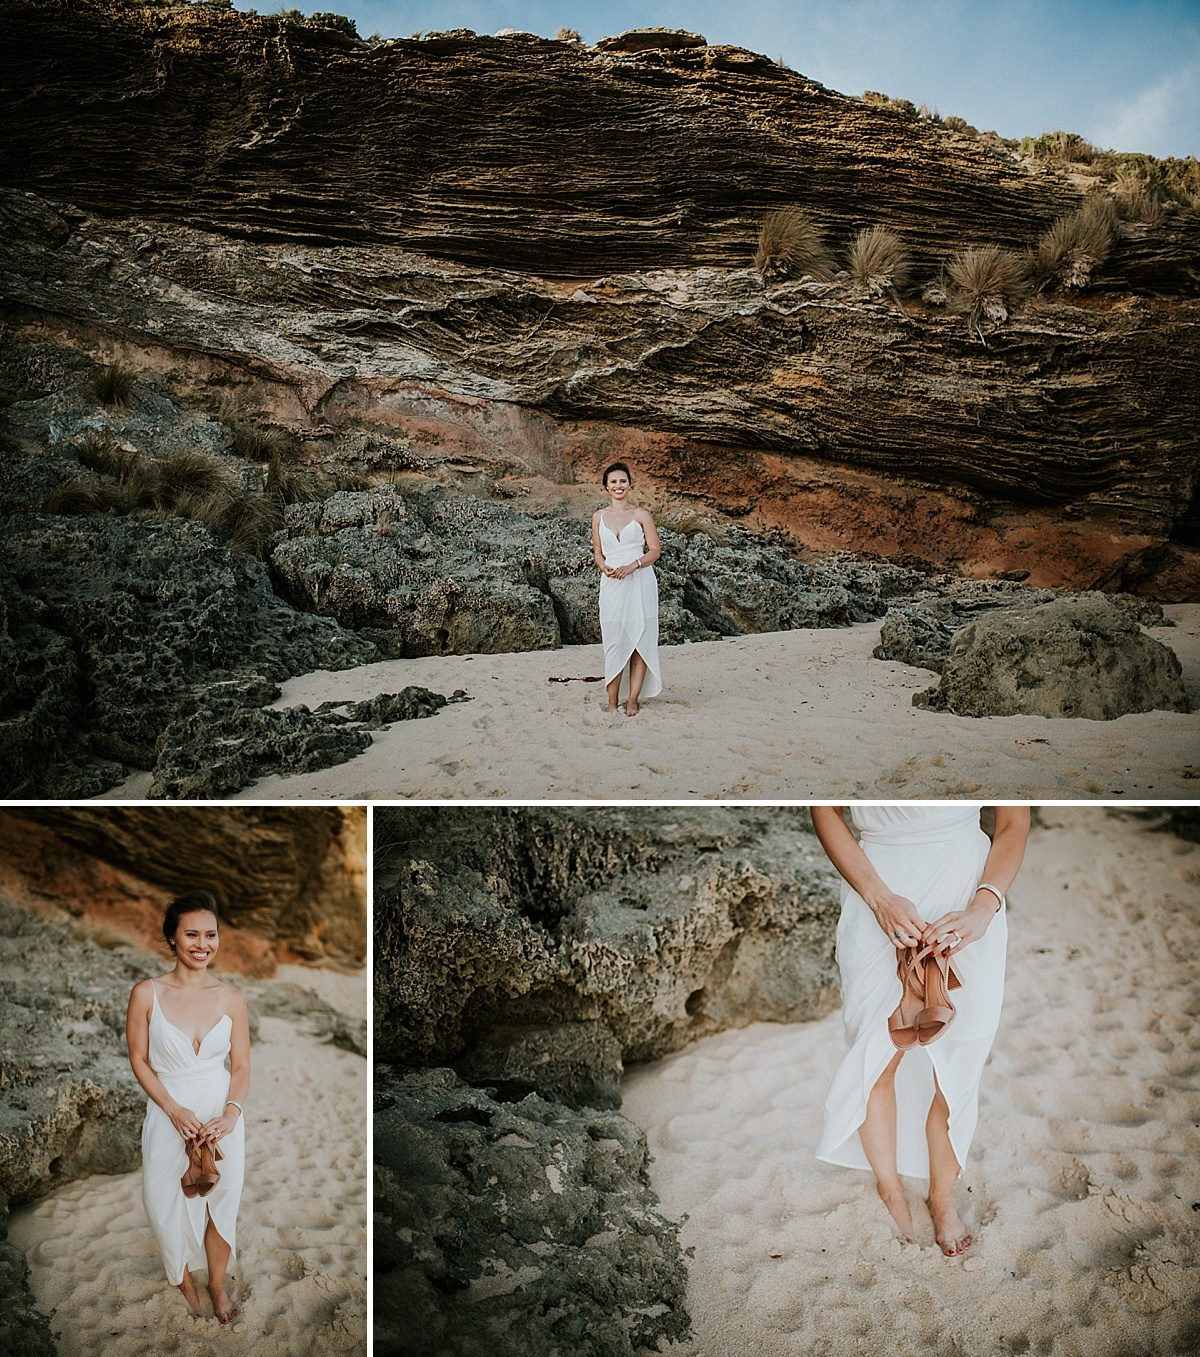 Zoe&Marc_Mornington-Peninsula-Candid-Romantic-Back-Beach-Engagement-Session_Melbourne-Quirky-Wedding-Photography_25